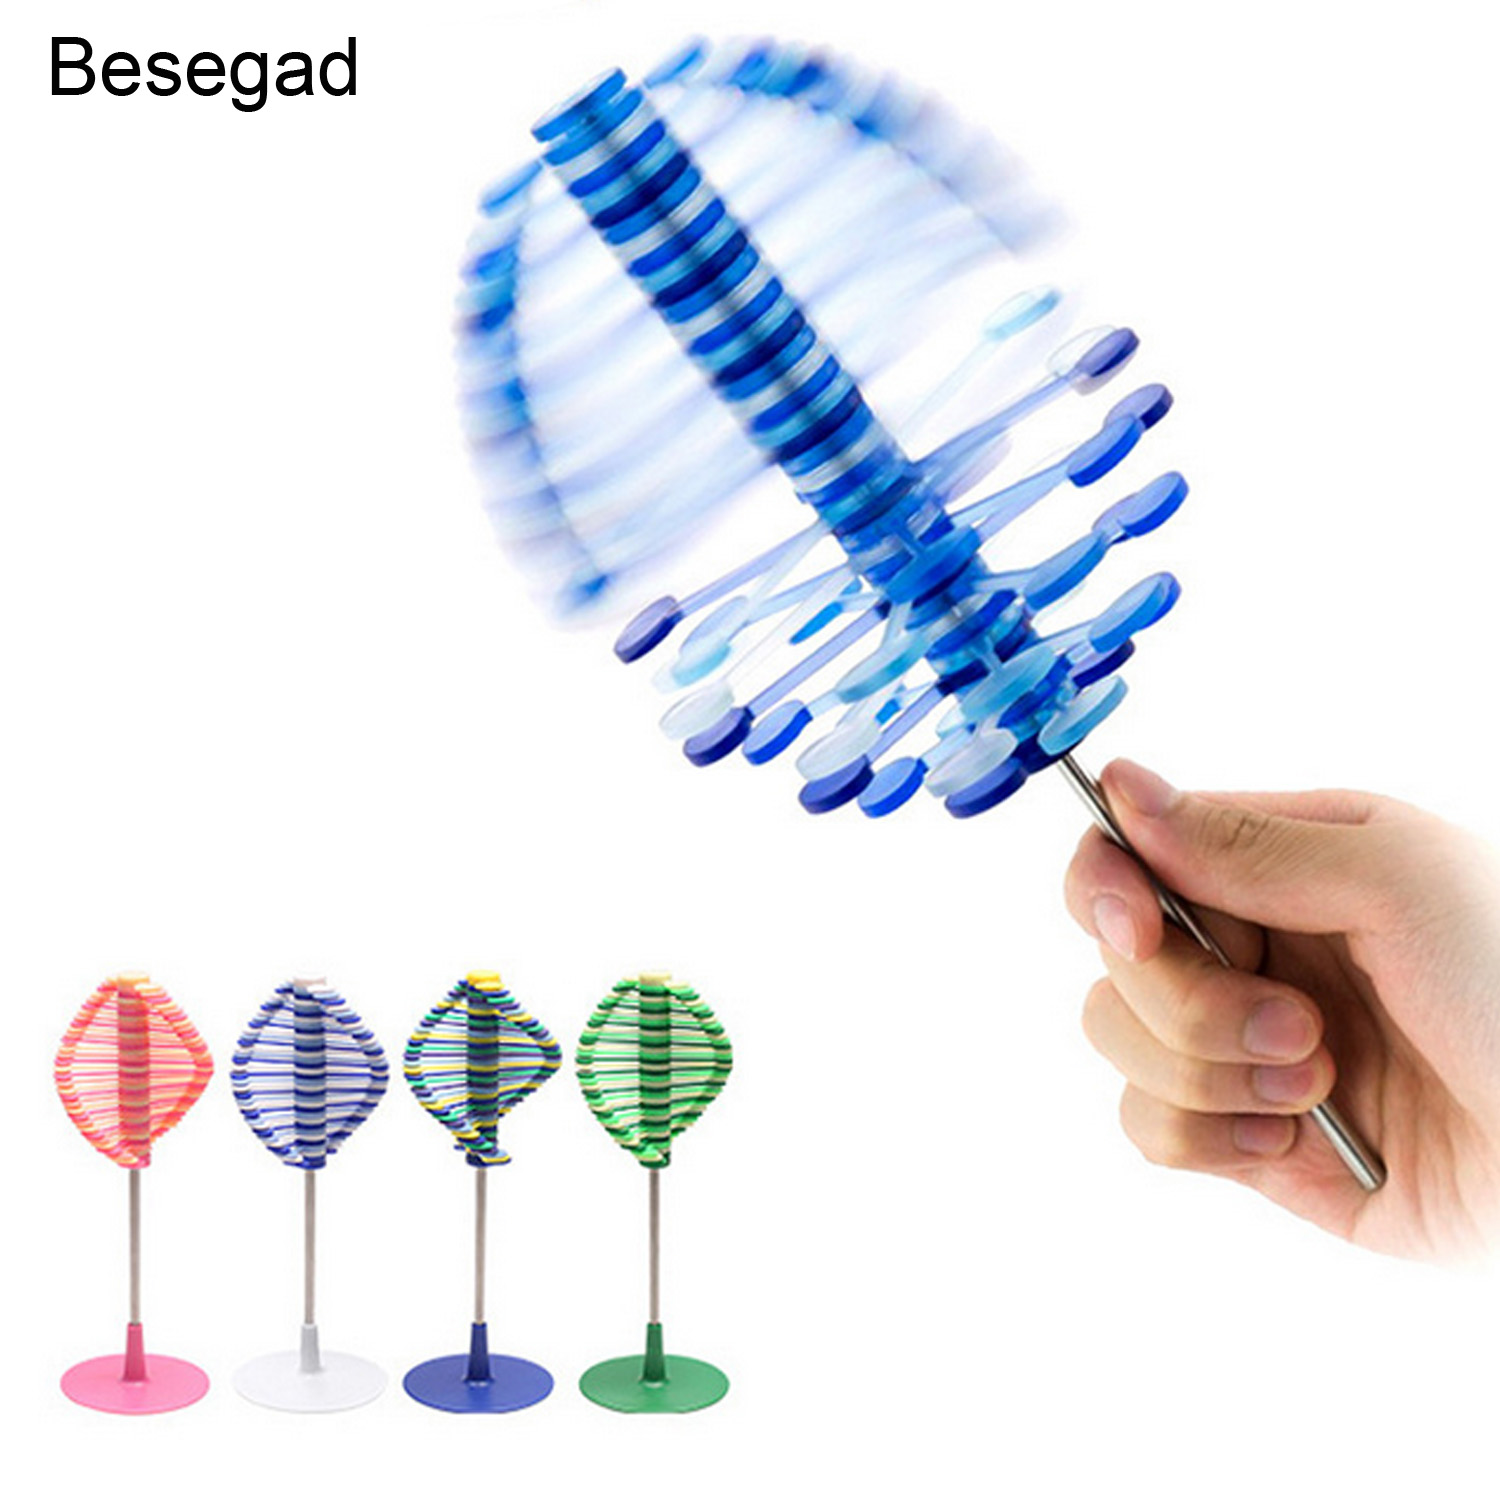 Besegad Funny Rotating Spin Lollipop Toy Kid Children Adults Stress Relief Puzzle Toys Home Office Desktop Decorations